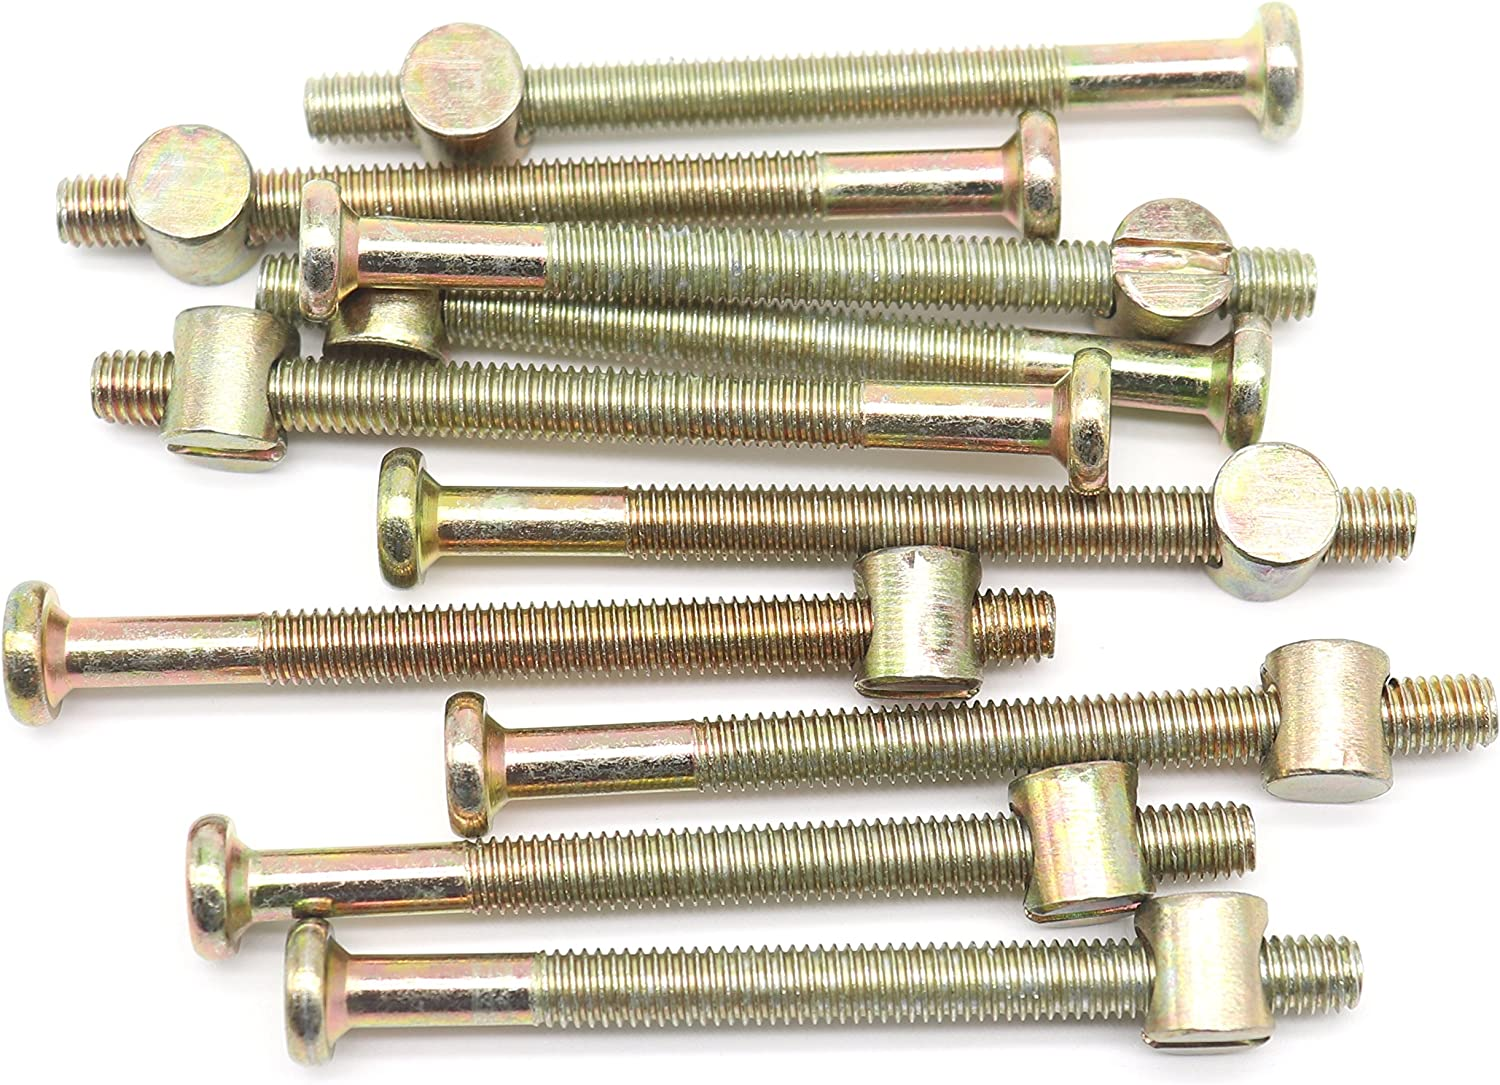 The Hillman Group 43225 Hardened Metric Hex Cap Screw 1.25mm x 30mm 7-Pack